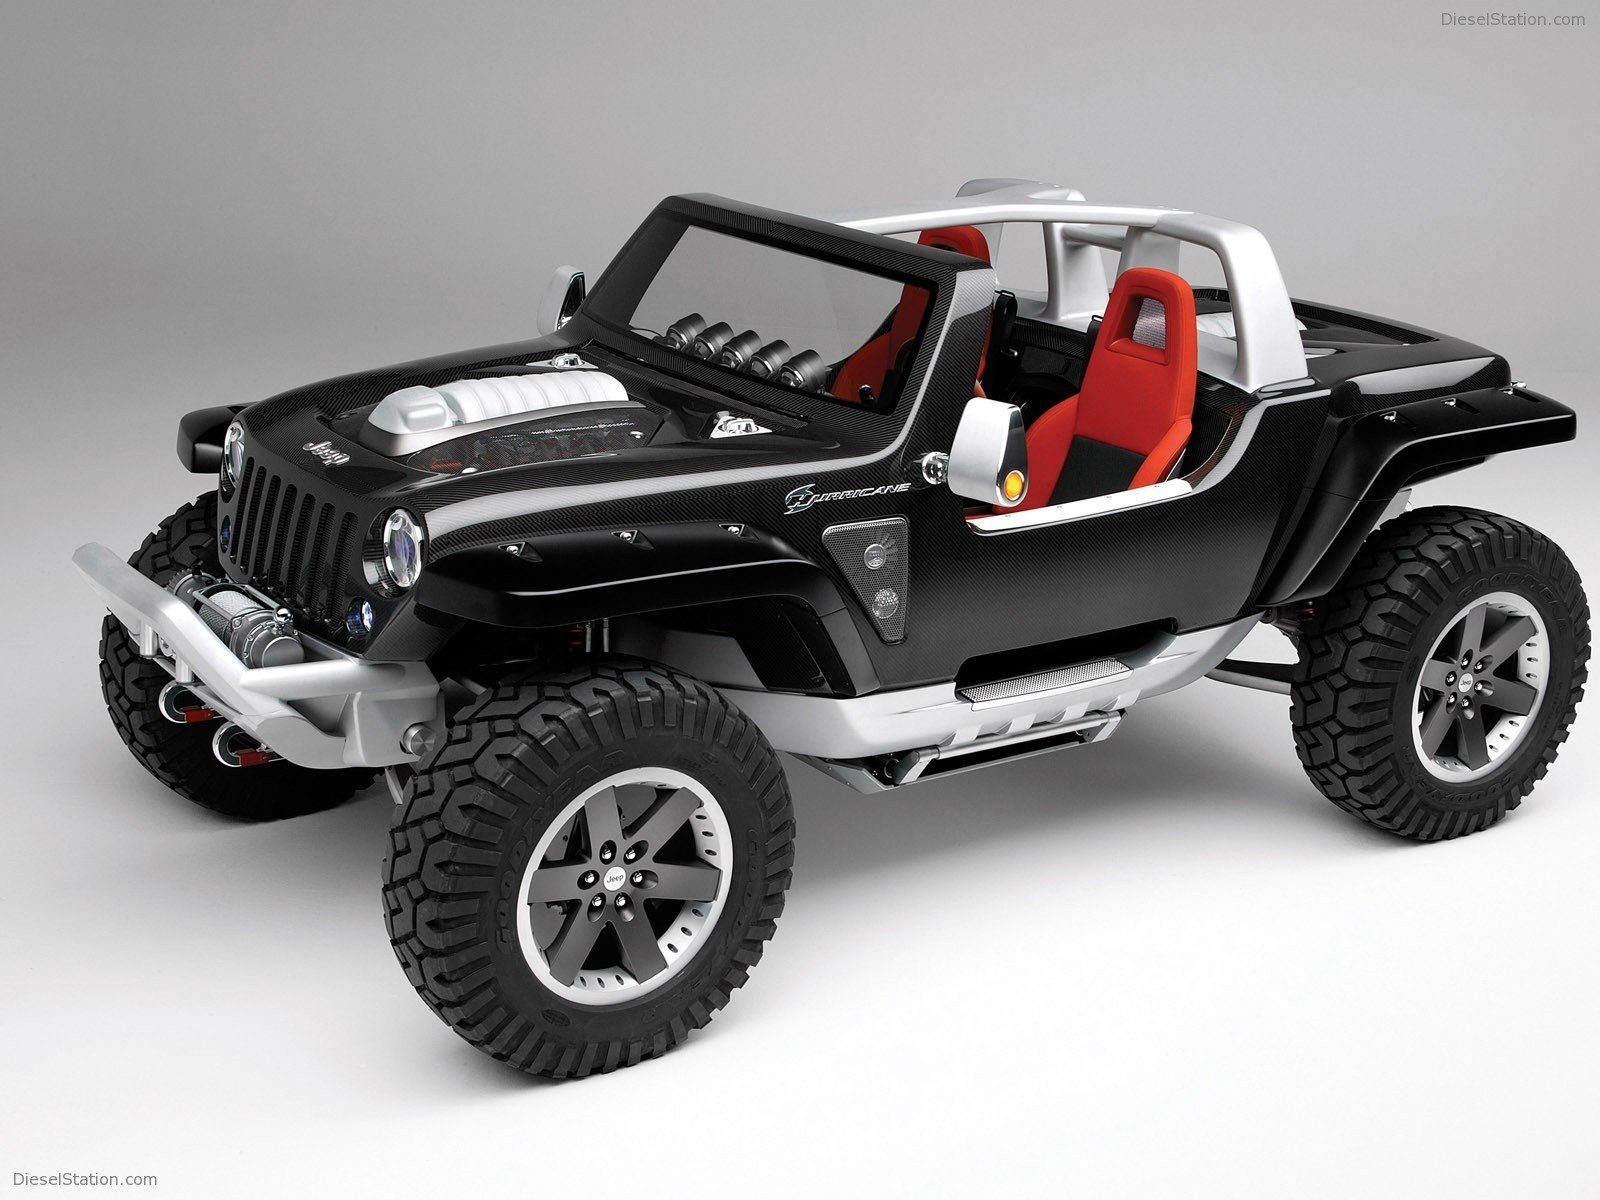 Latest Jeep Hurricane Concept Exotic Car Photo 011 Of 19 Free Download